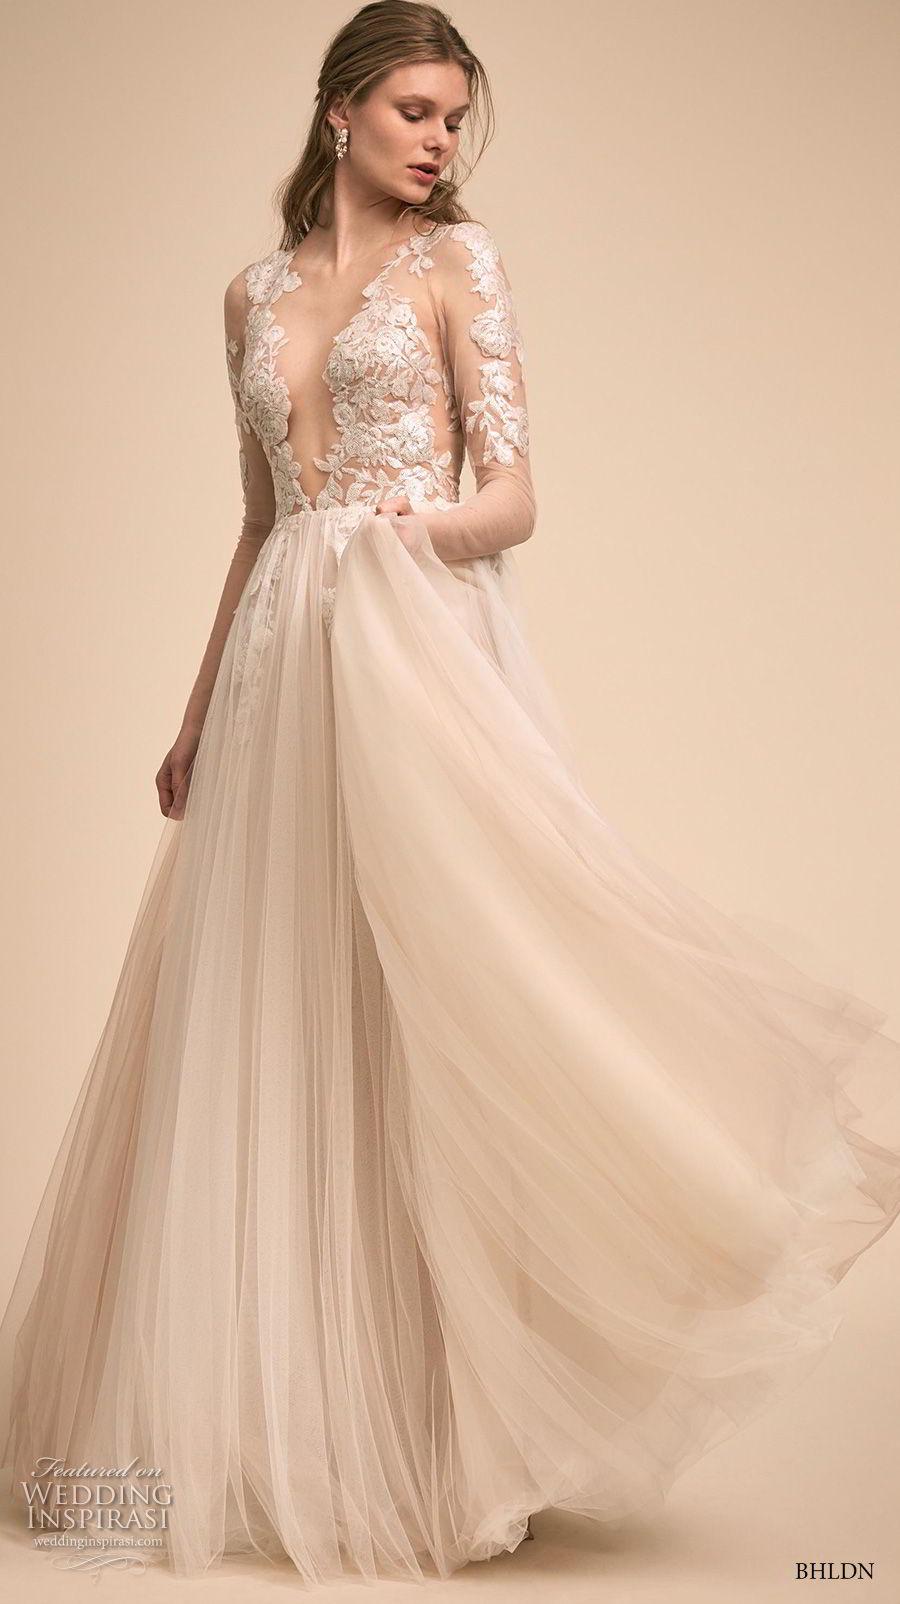 bhldn 2018 bridal long sleeves deep v neck heavily embellished bodice tulle skirt romantic soft a  line wedding dress (5) mv